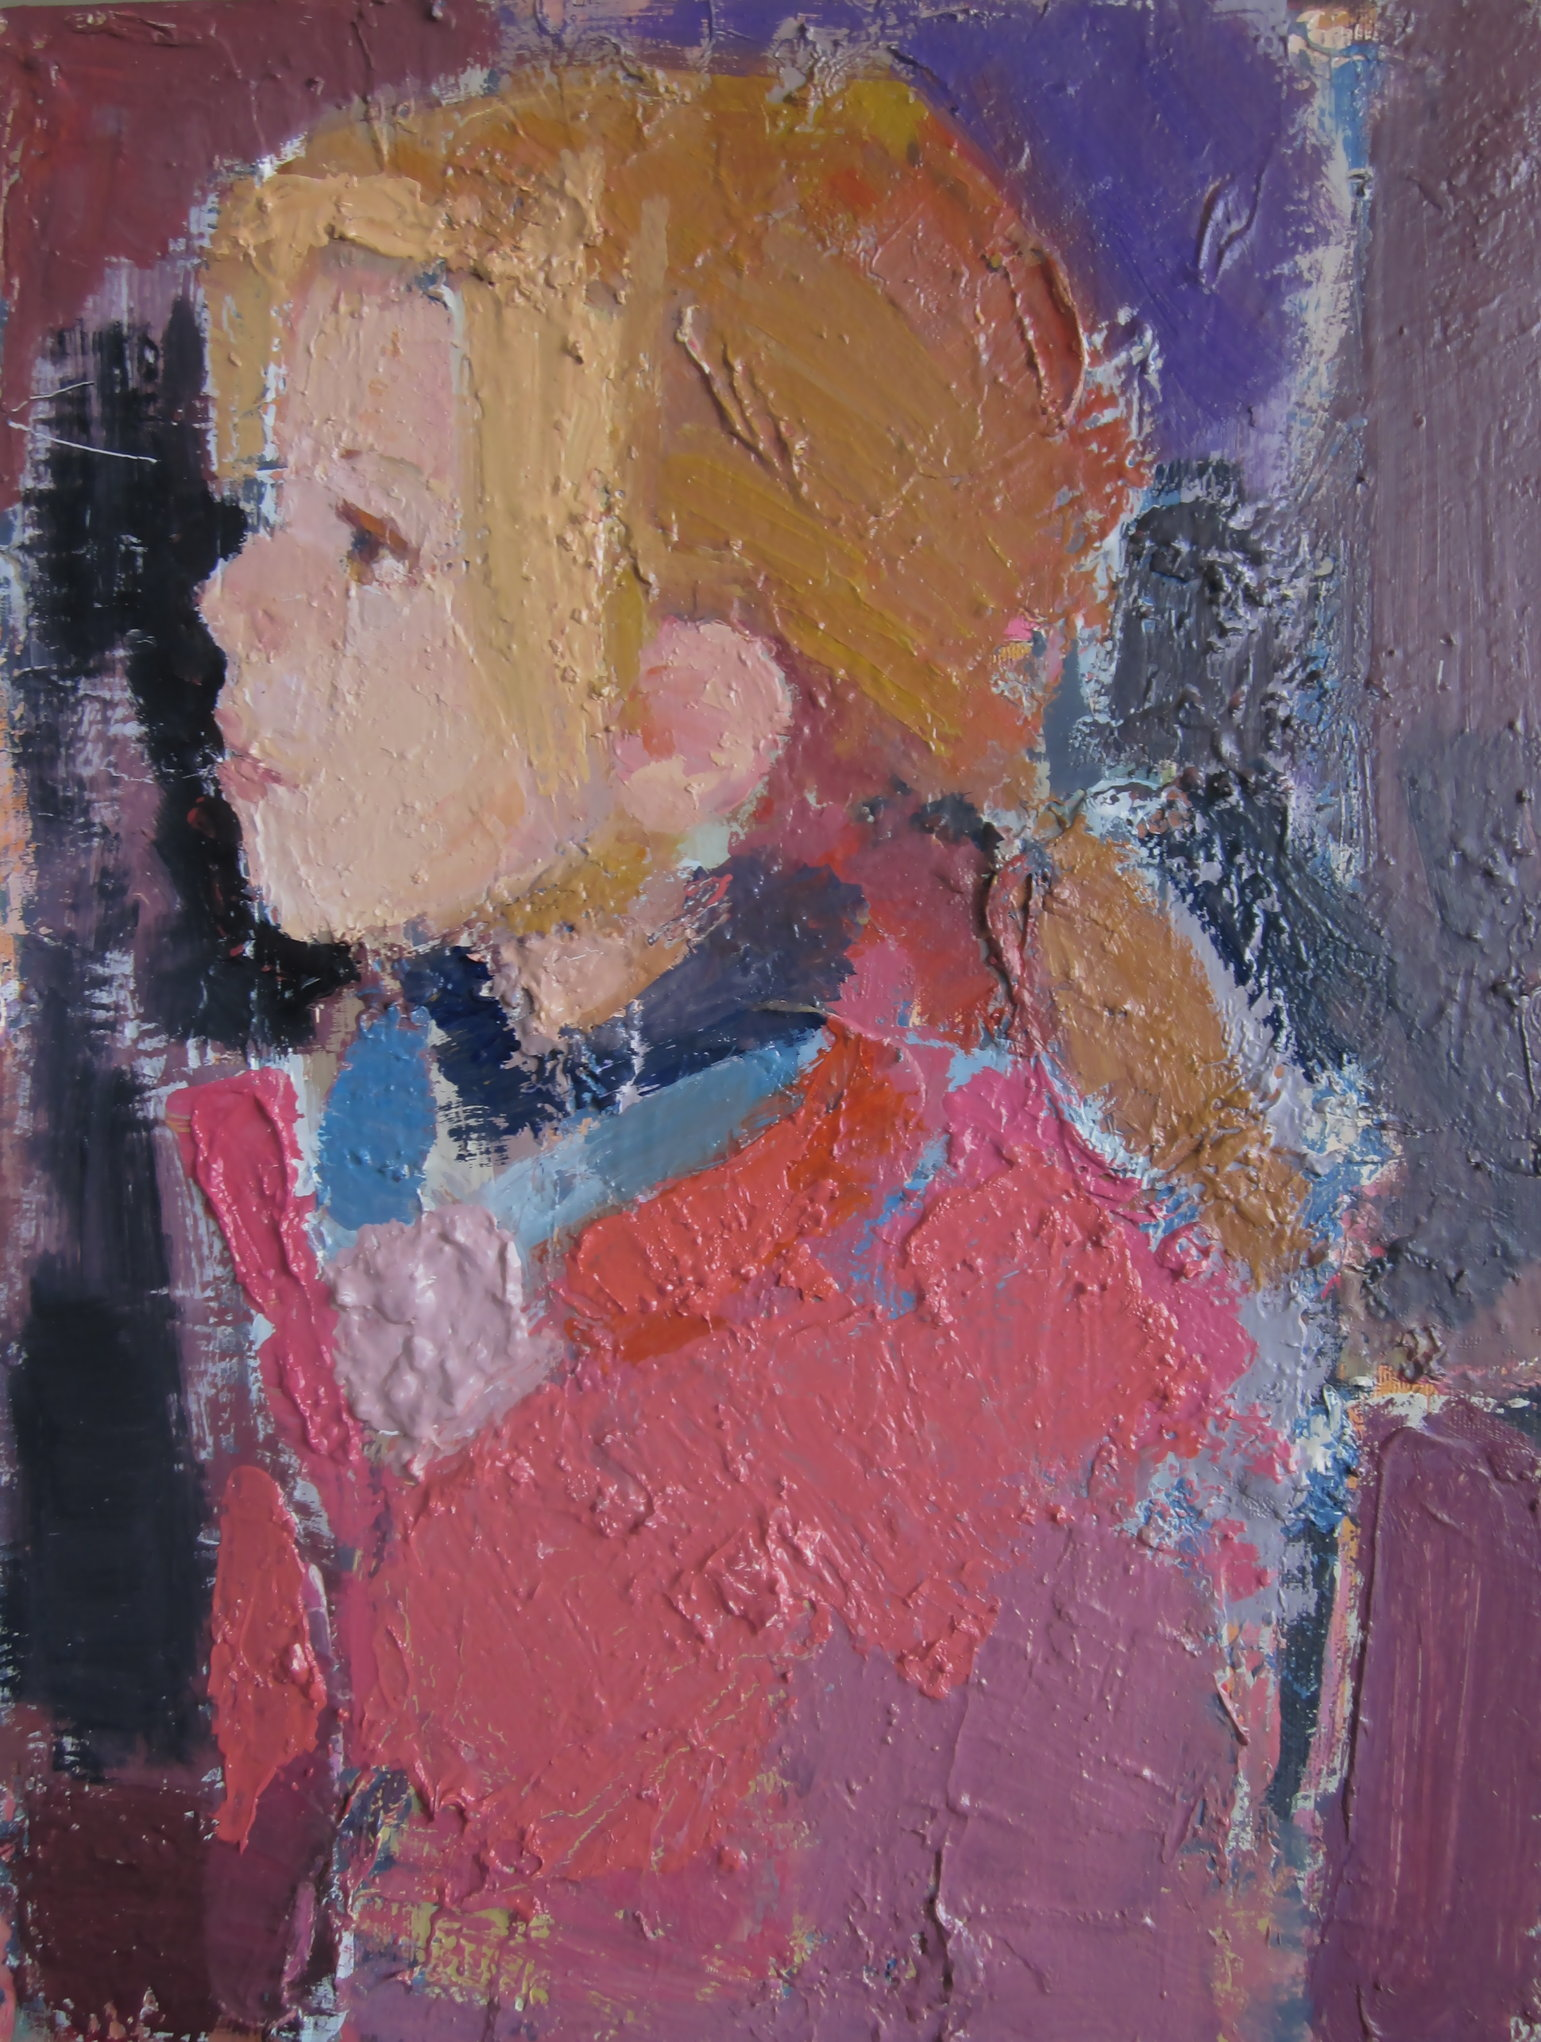 'The girl'